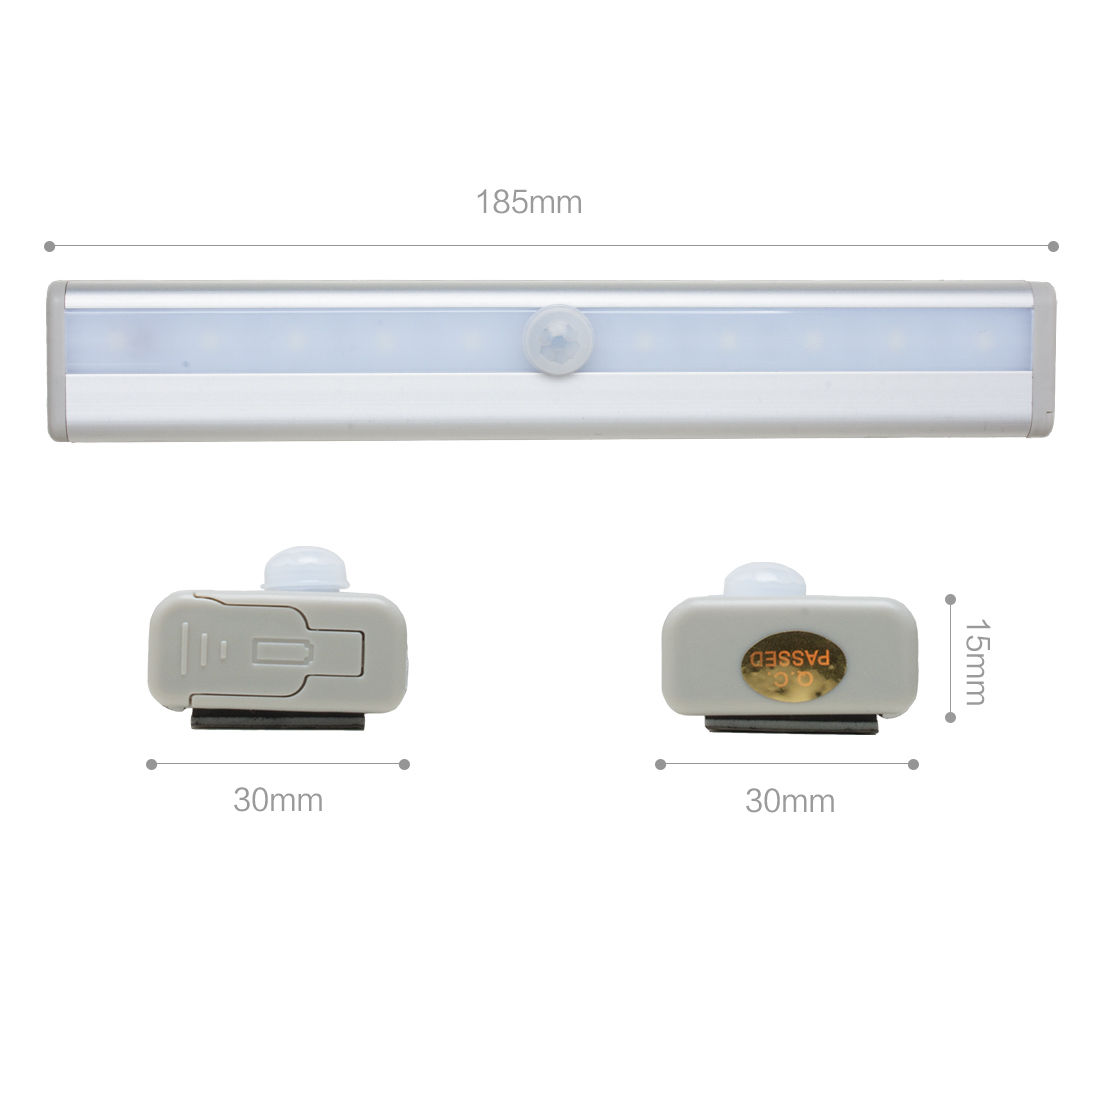 Lighting Basement Washroom Stairs: PIR Motion Sensor Light Battery Power 10 LED Closet Stairs